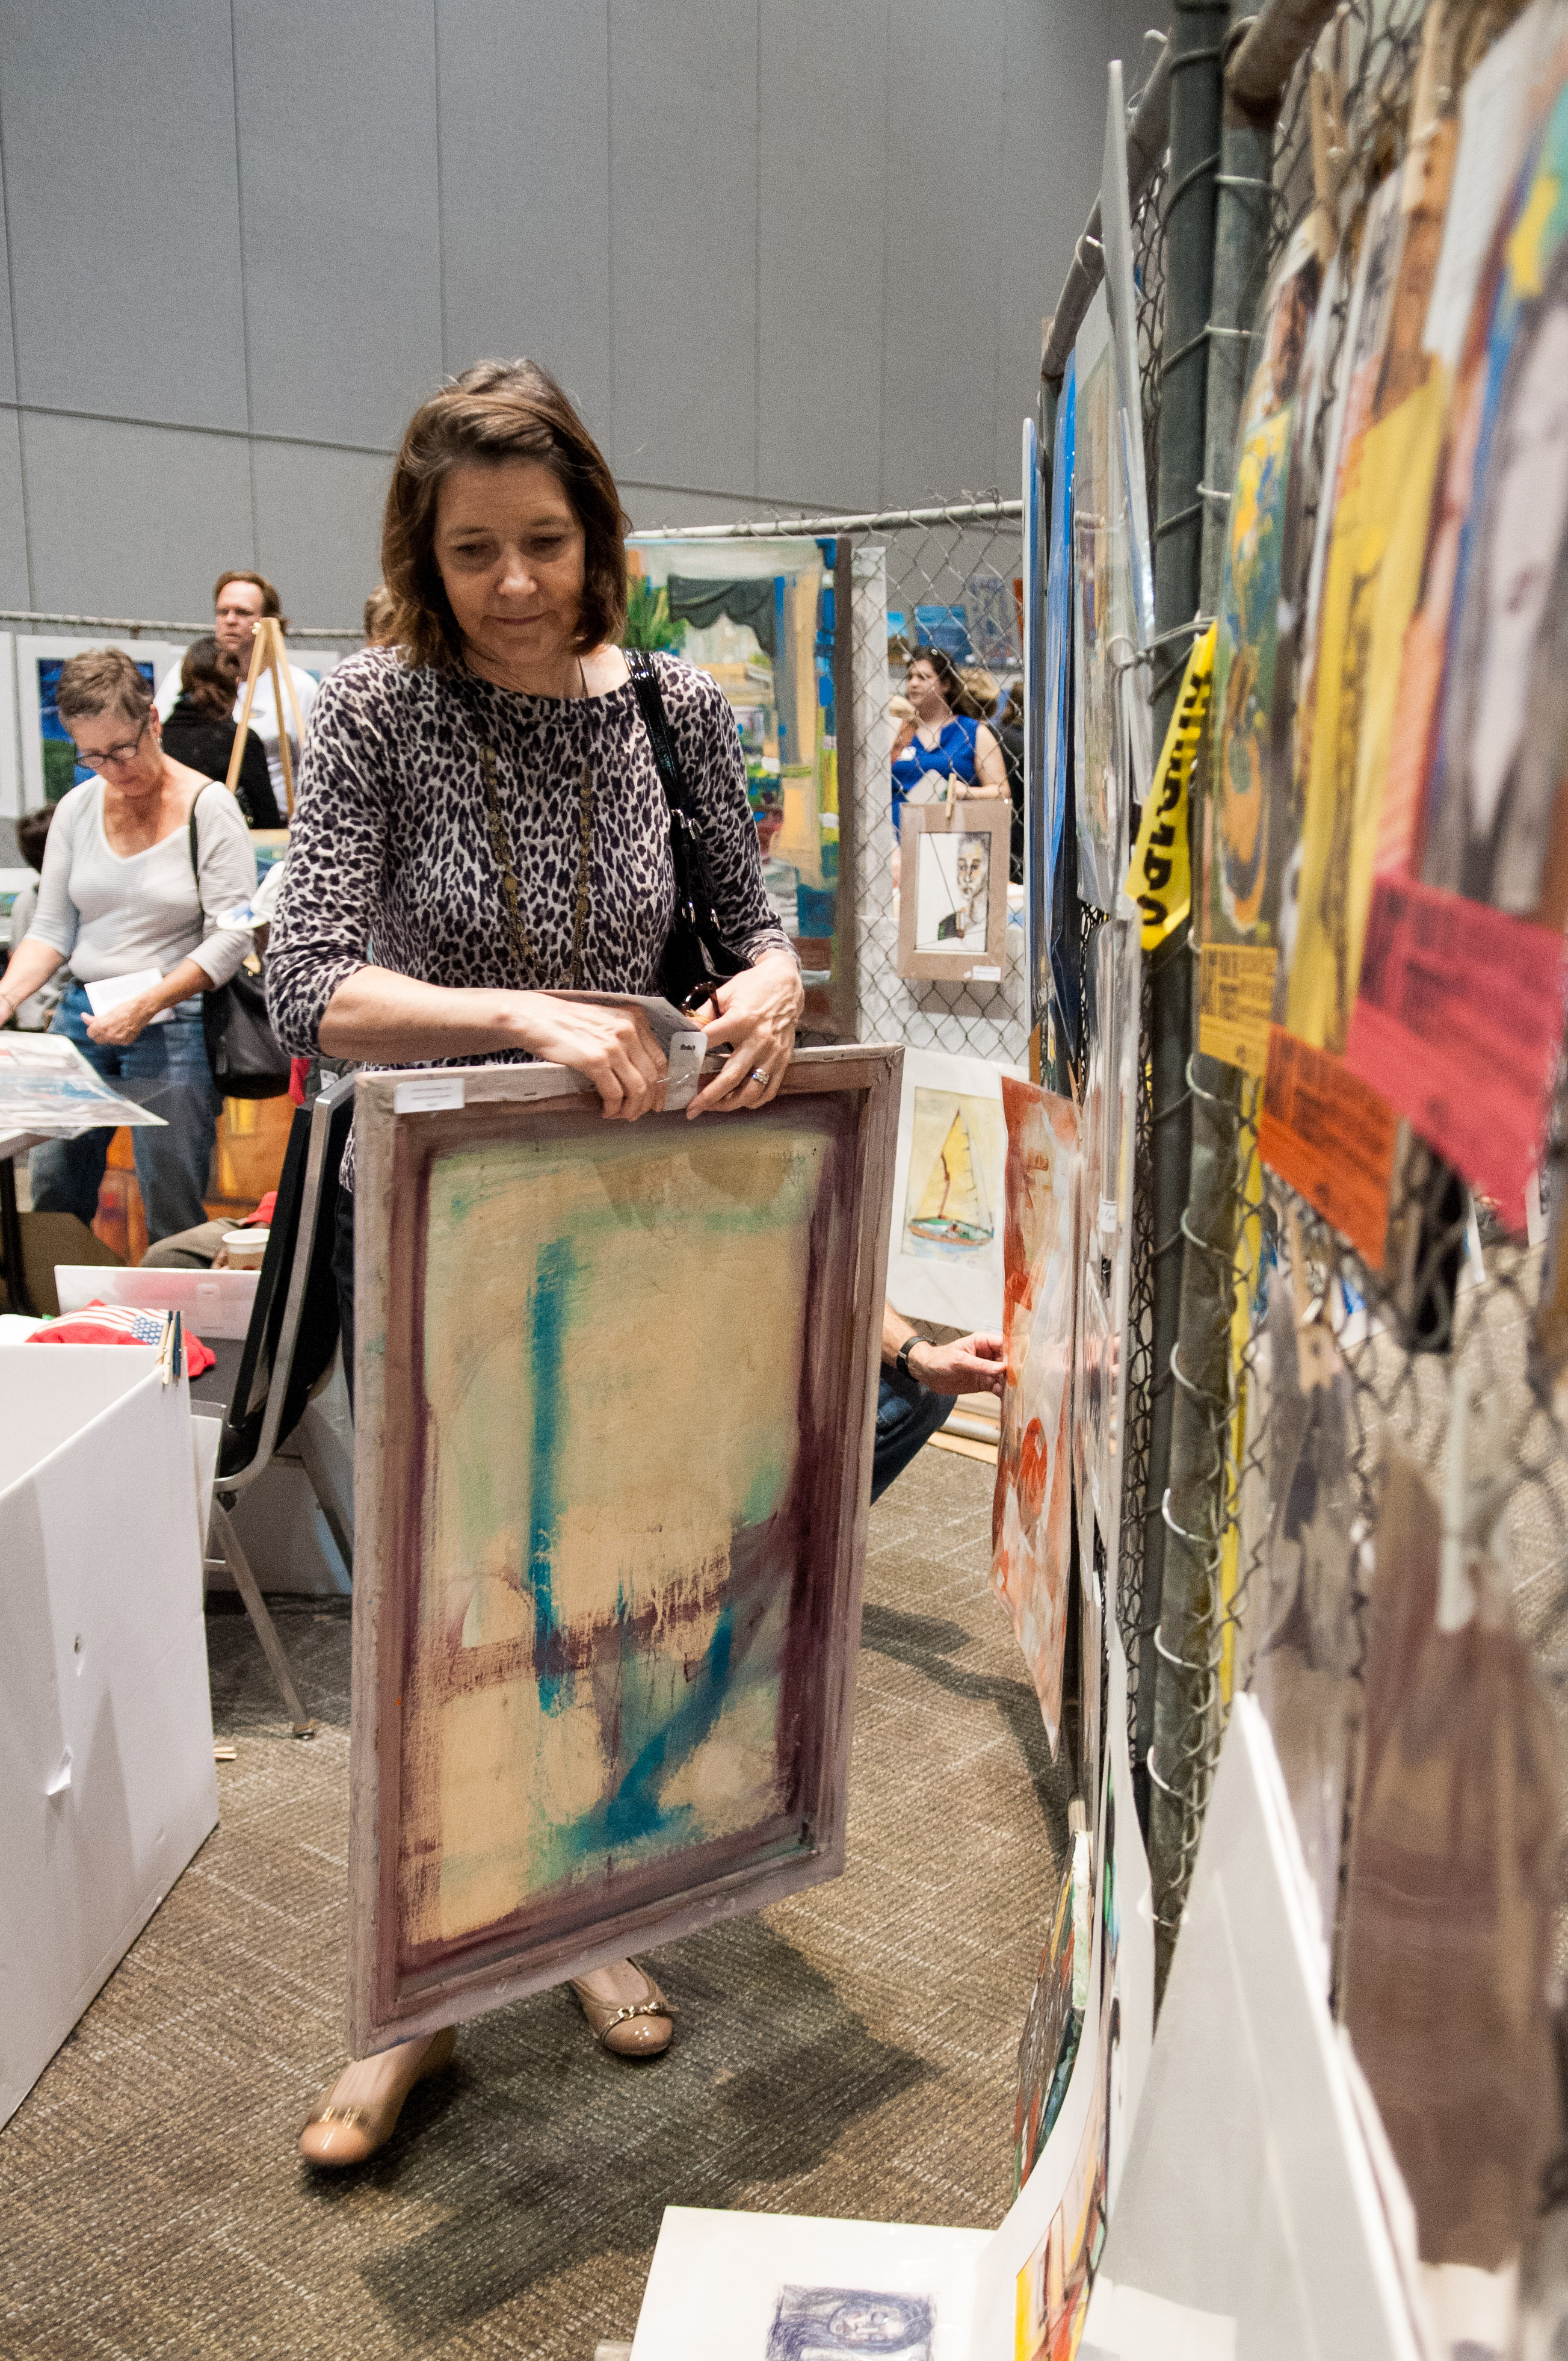 A woman takes down the art piece she is going to buy from the Art from the Streets Show and Sale. Photo by Skylar Isdale